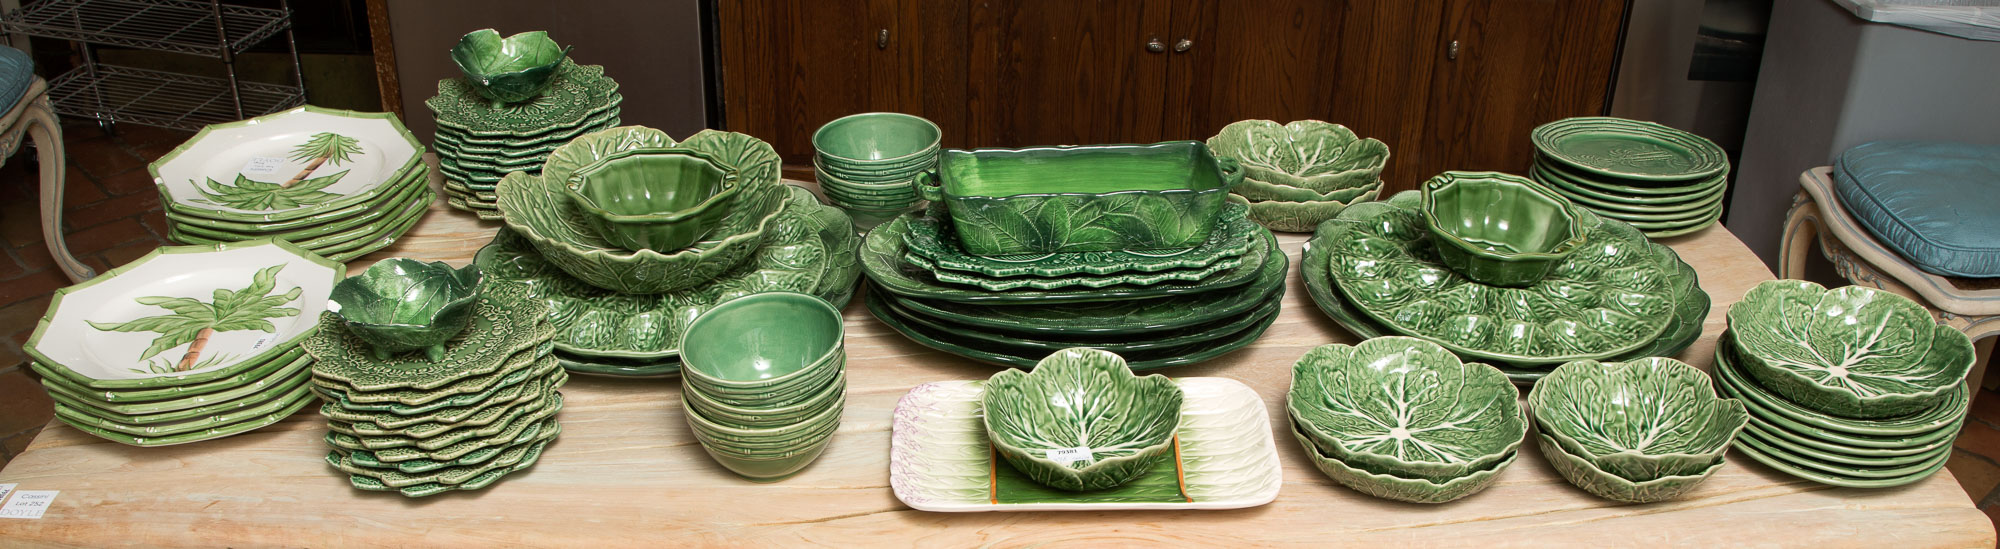 Lot image - Miscellaneous Group of Italian and Portuguese Green Glazed and Hand-Painted Earthenware Table Articles